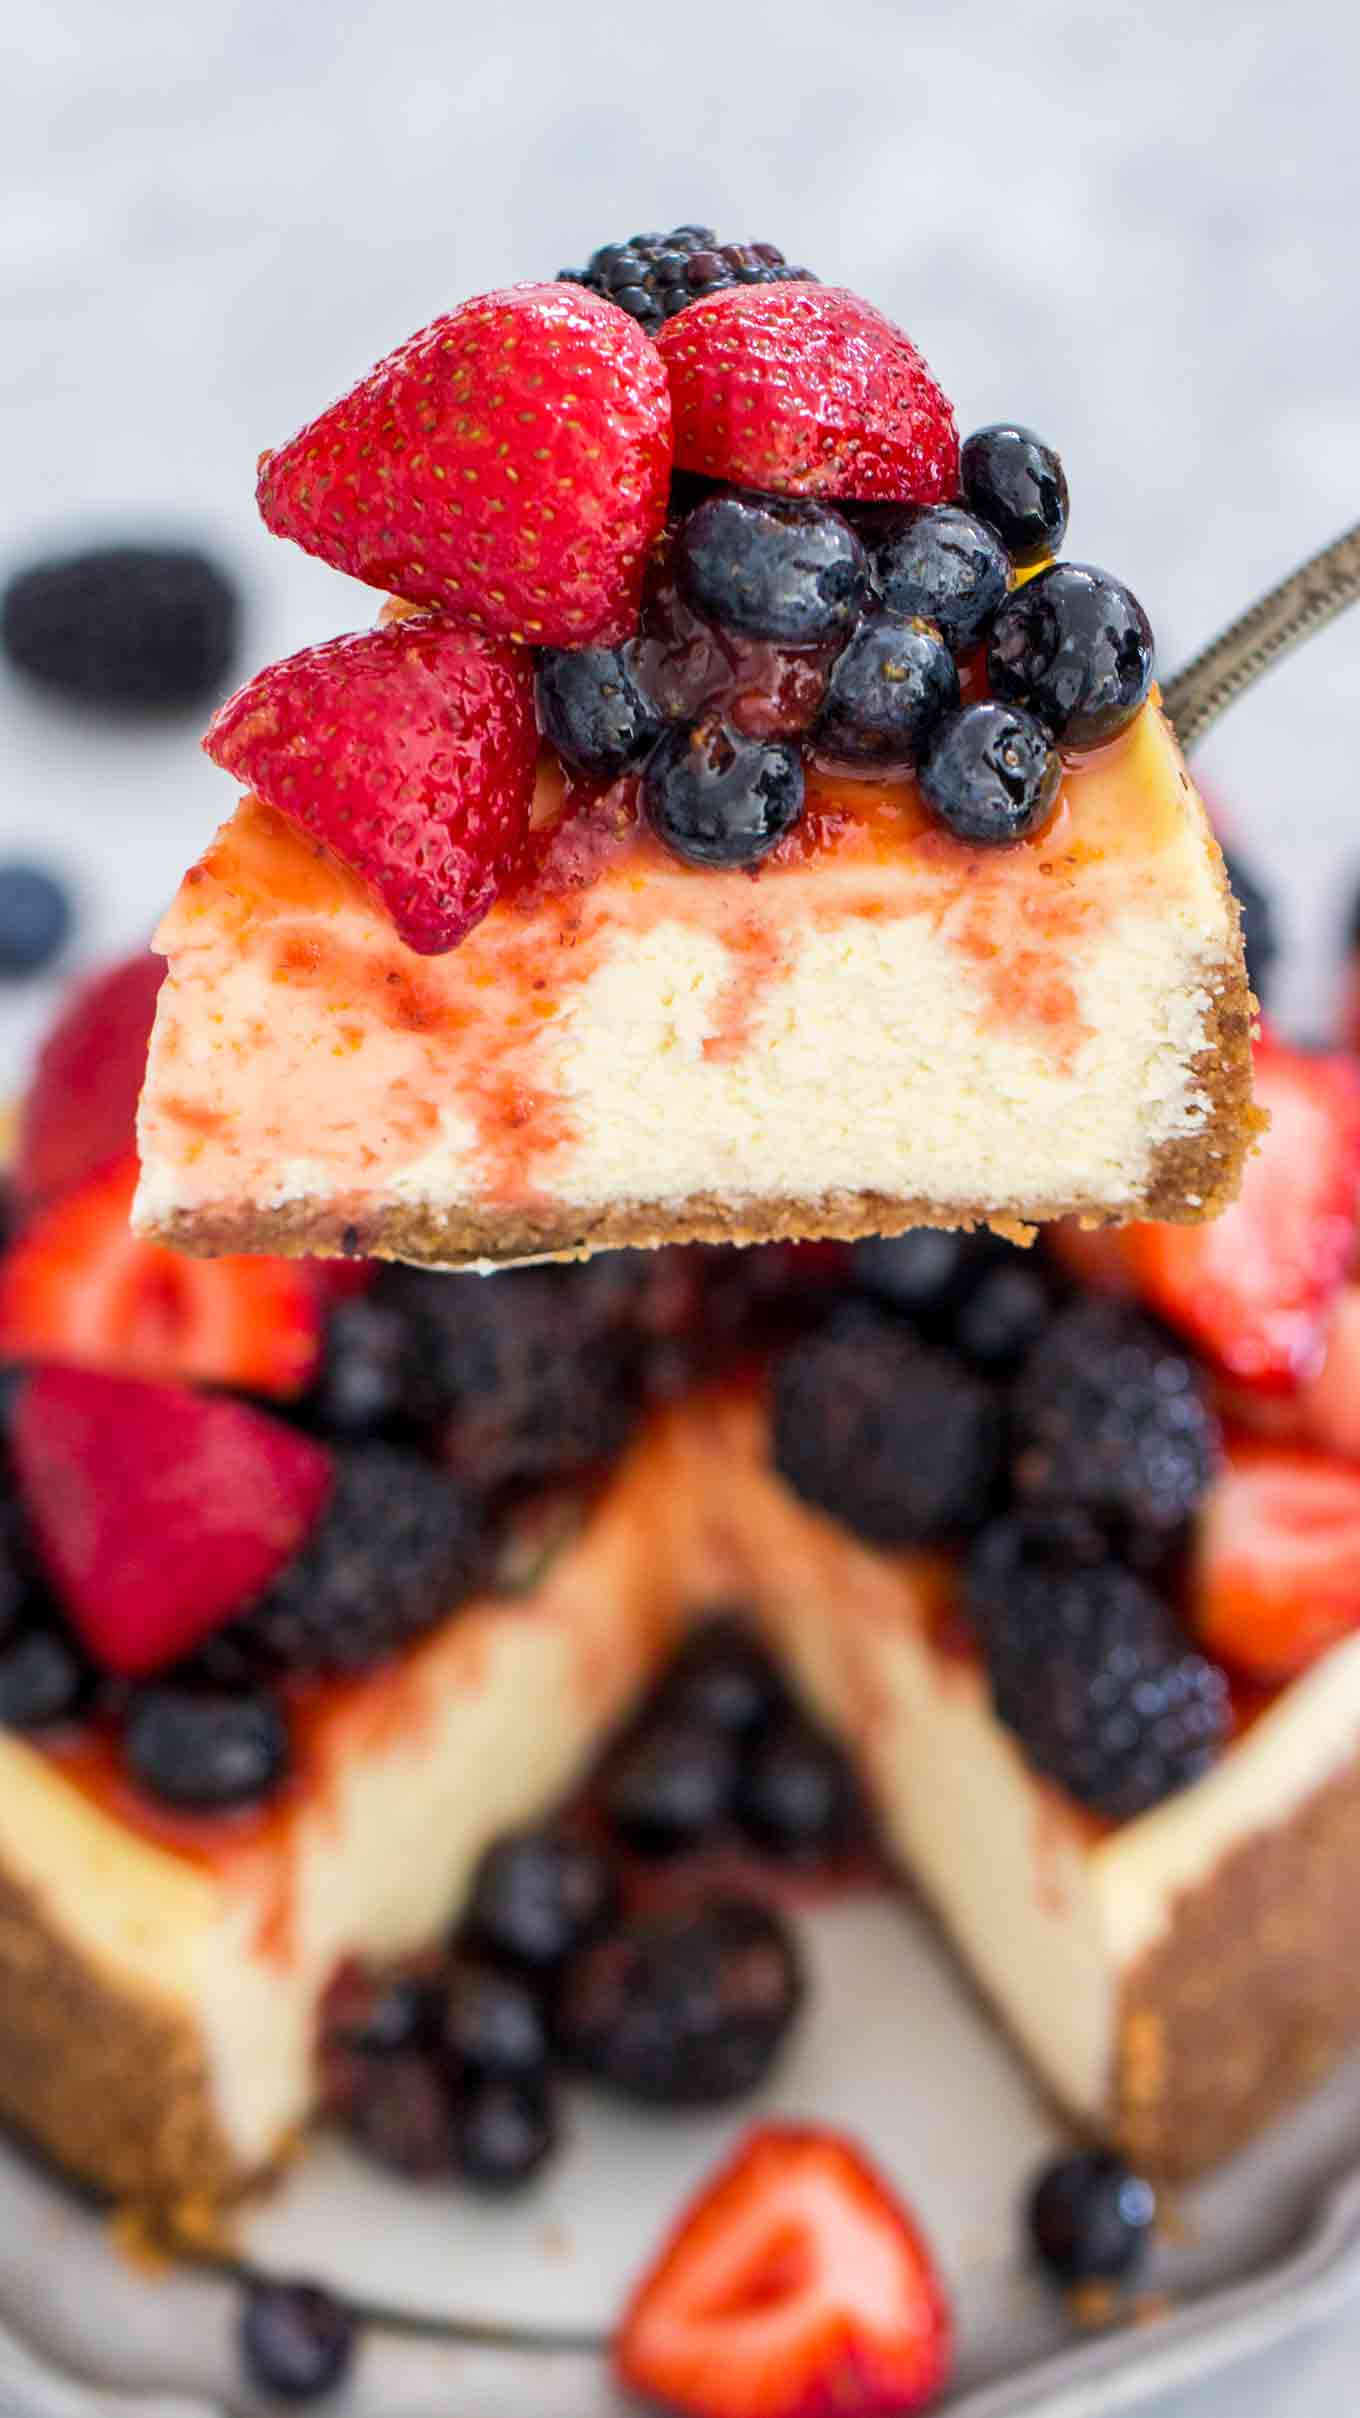 Instant Pot Springform Pan Recipes  Best Instant Pot Cheesecake VIDEO Sweet and Savory Meals